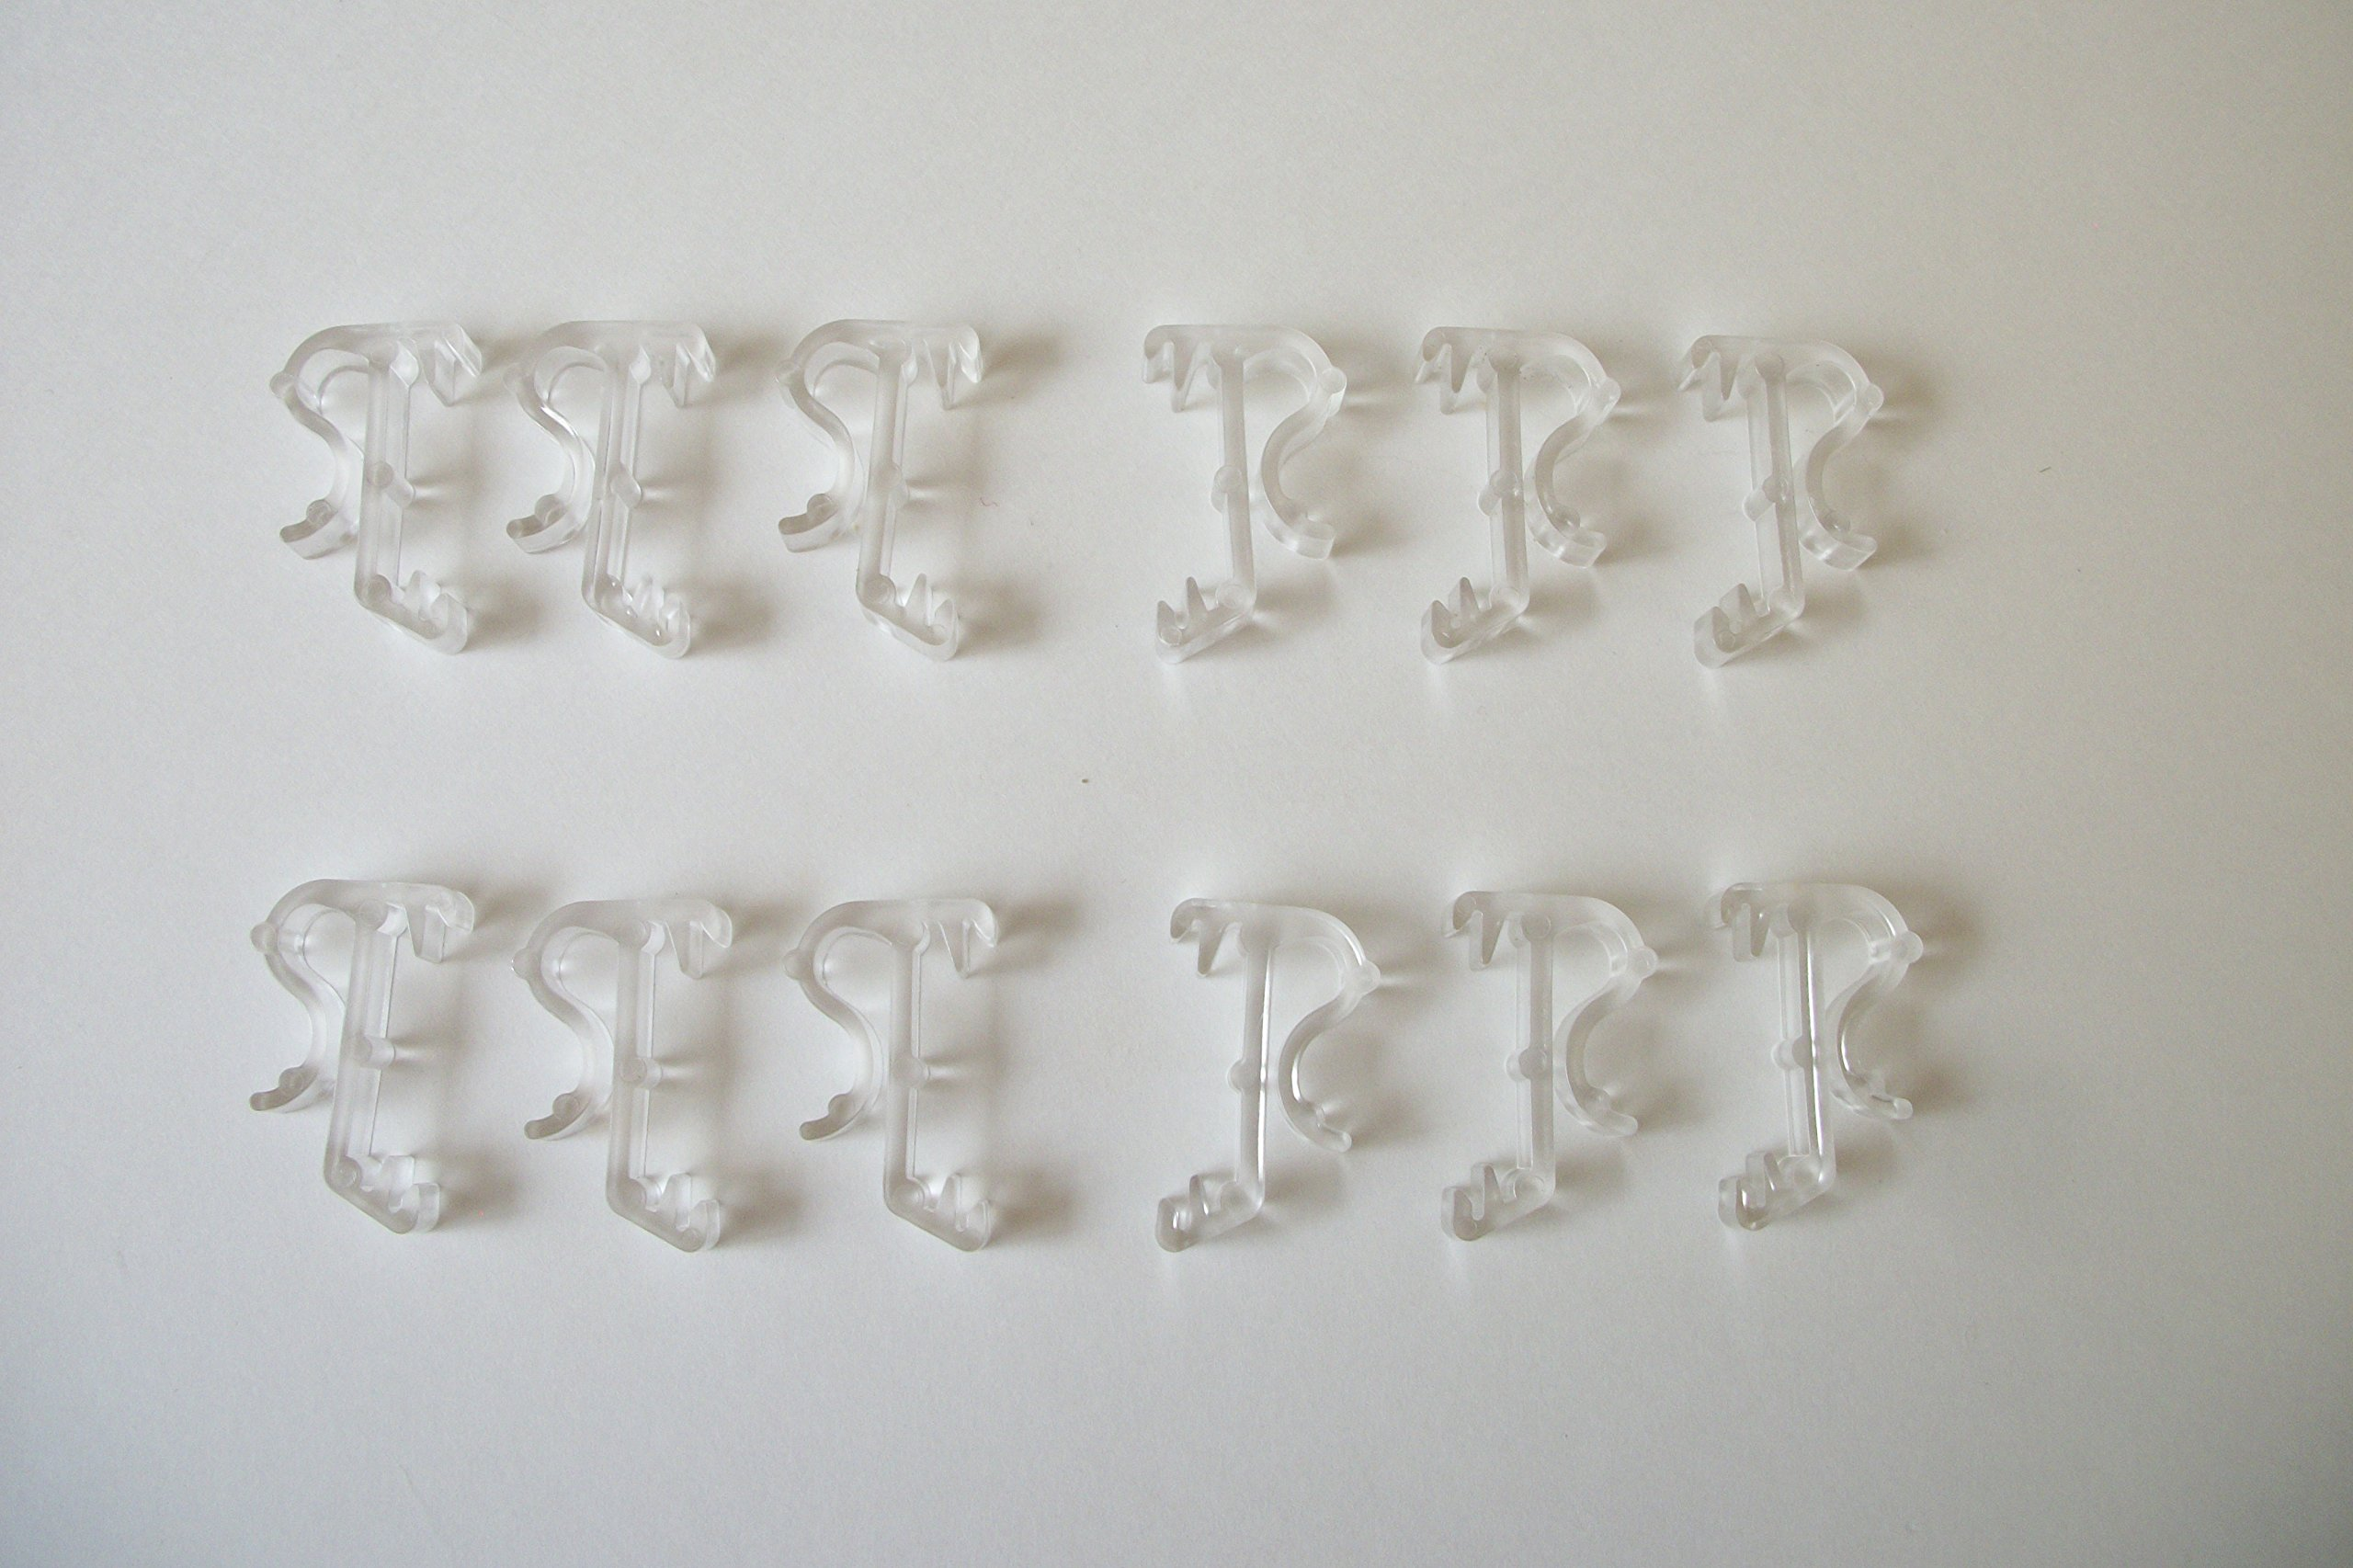 Wood or Faux Blind Single Slat Valance Retainer Clips 30 Pack Clear